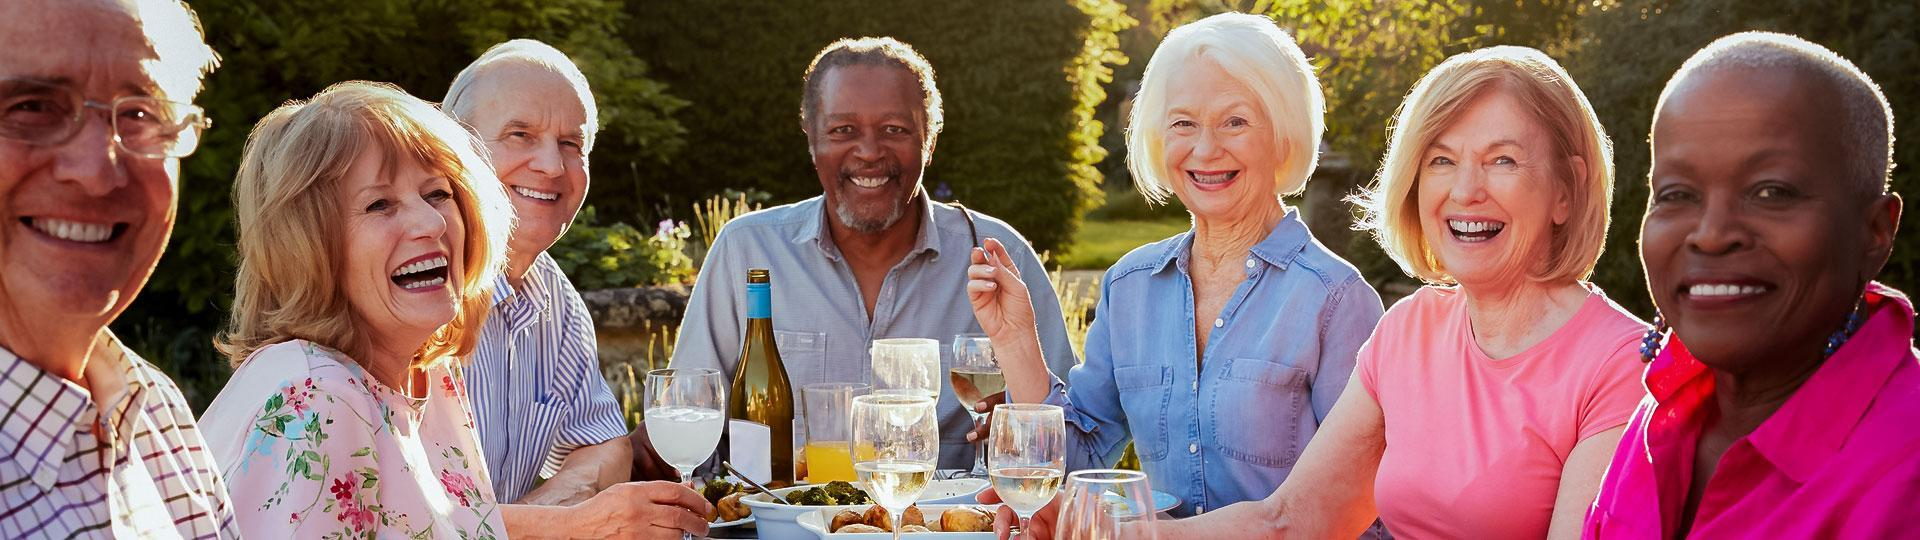 Image of senior friends enjoying brunch